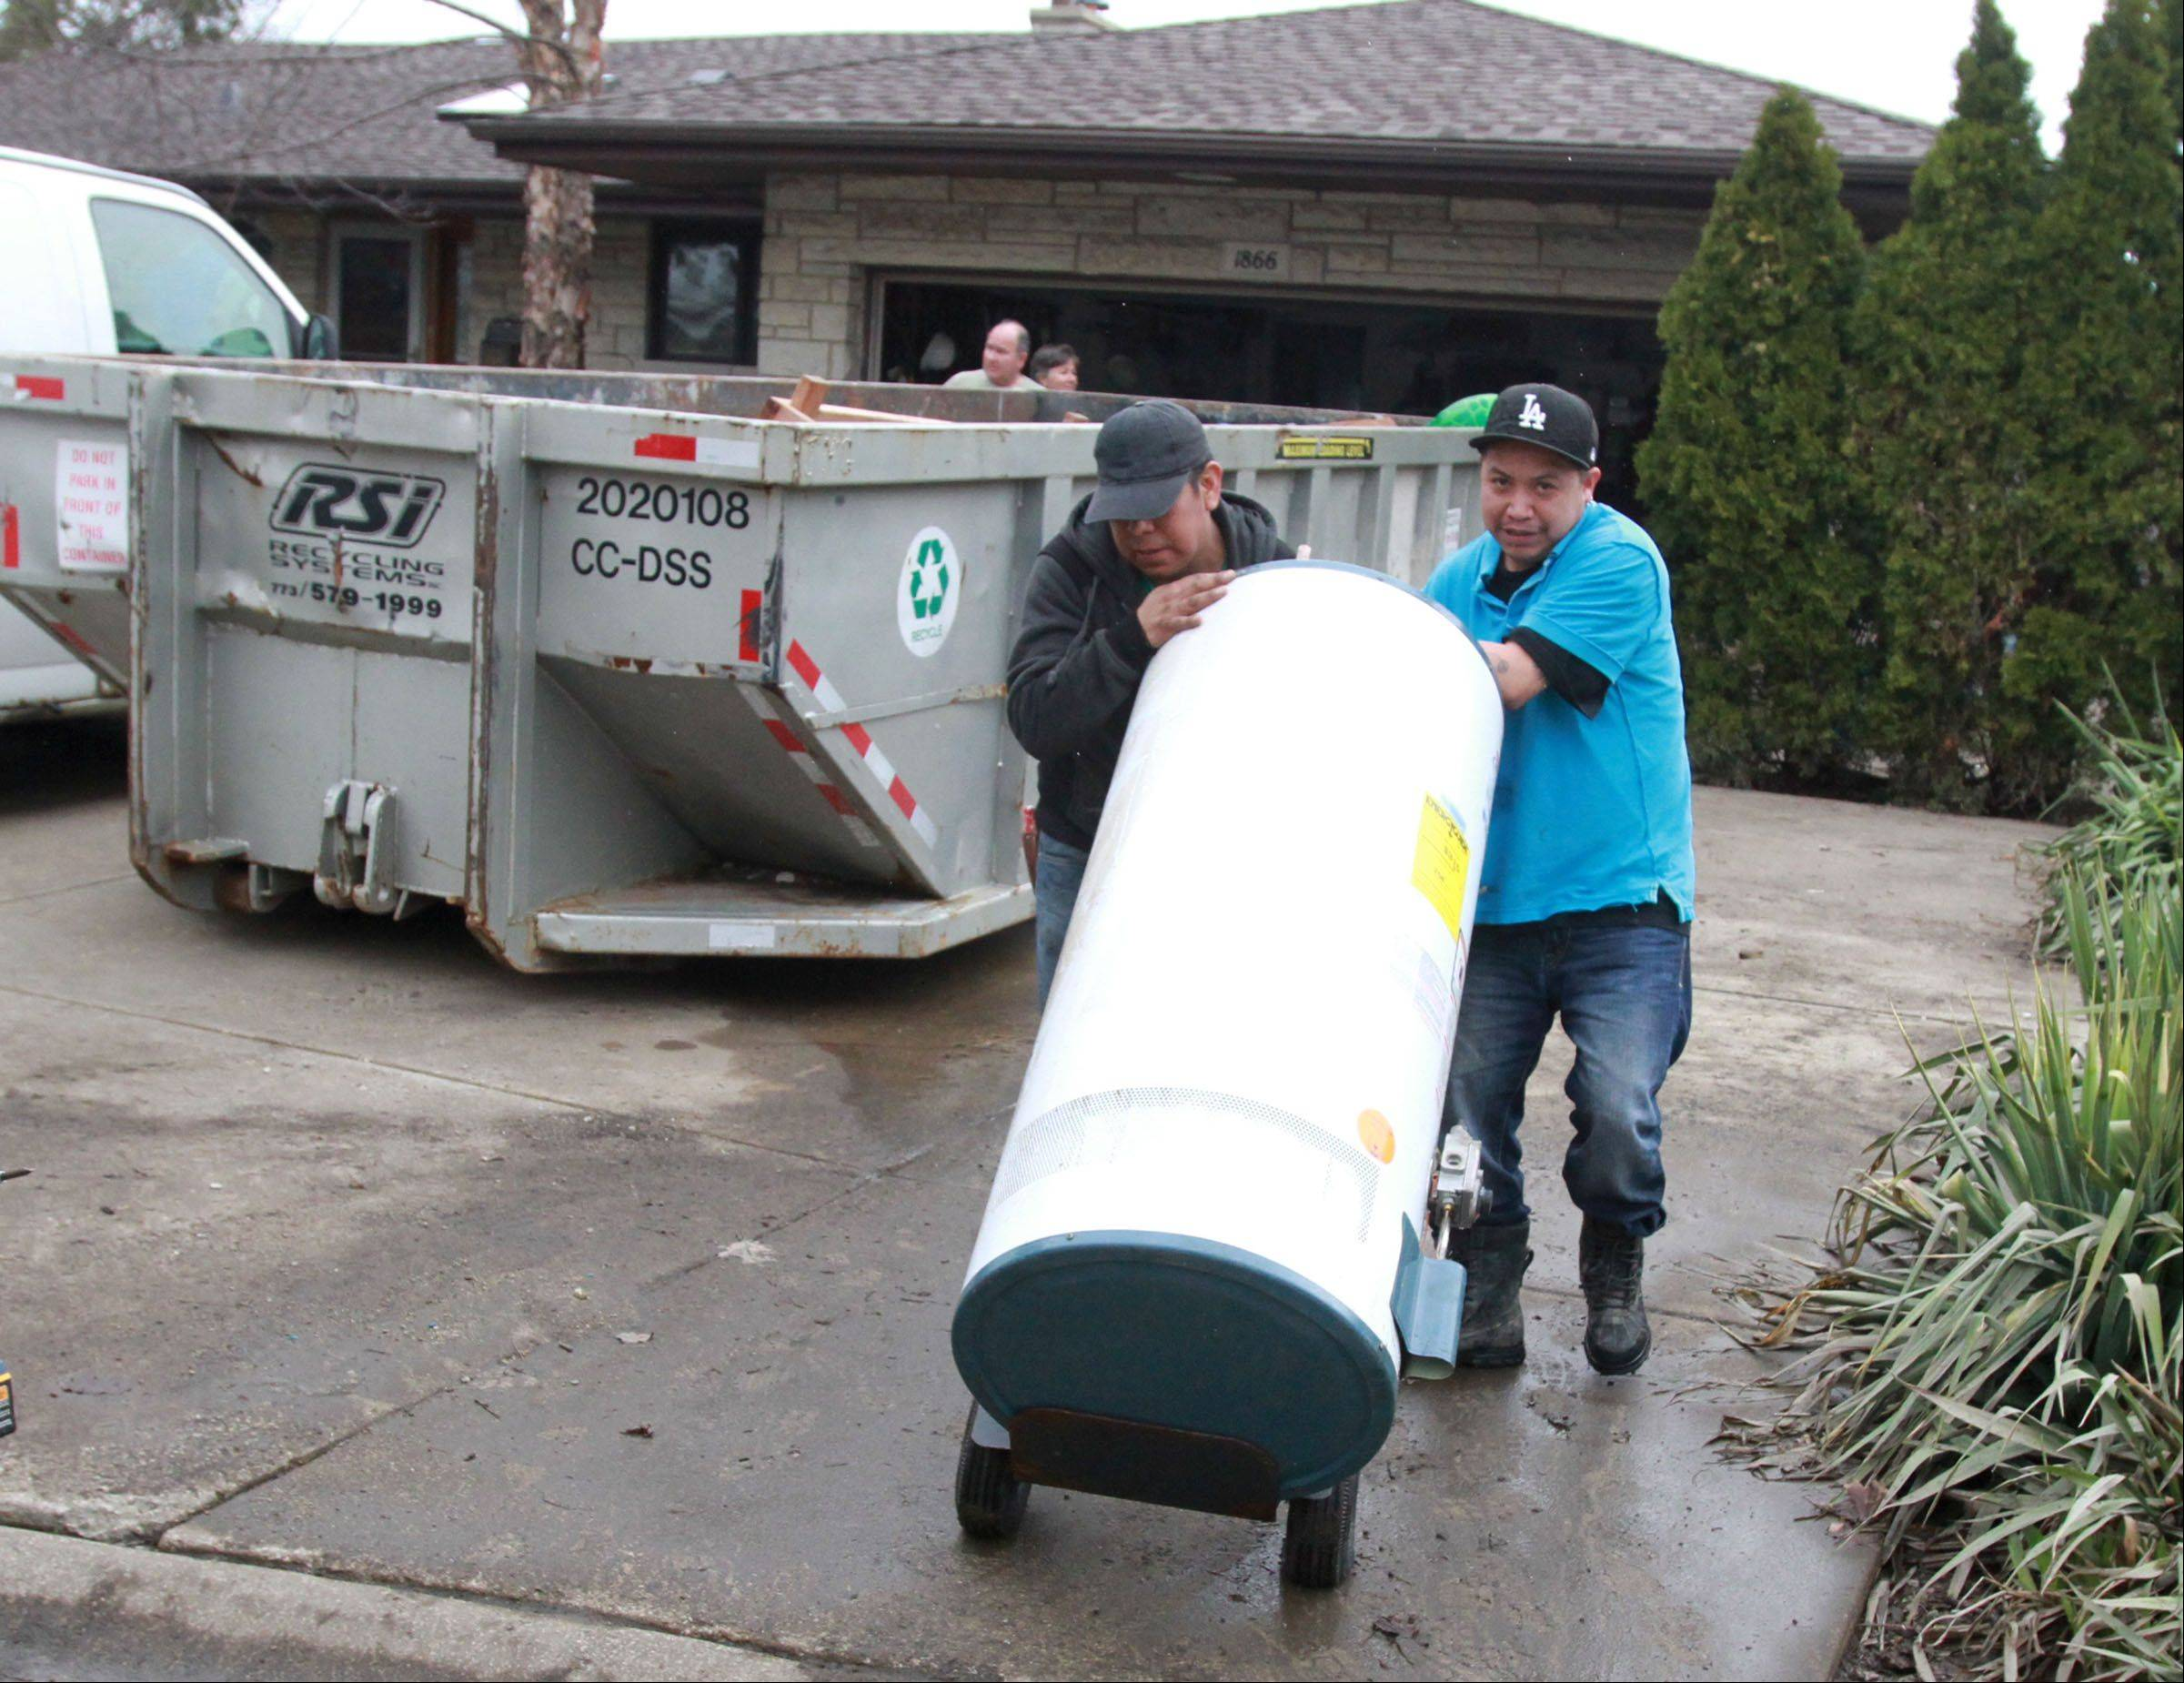 Danny Mateos and Paco Matoes with Arthur J. Rogers and Company, remove a hot water heater from Kathi and Russell Fantetti's Des Plaines home on Tuesday. Kathi said they lost everything in the basement including furniture.